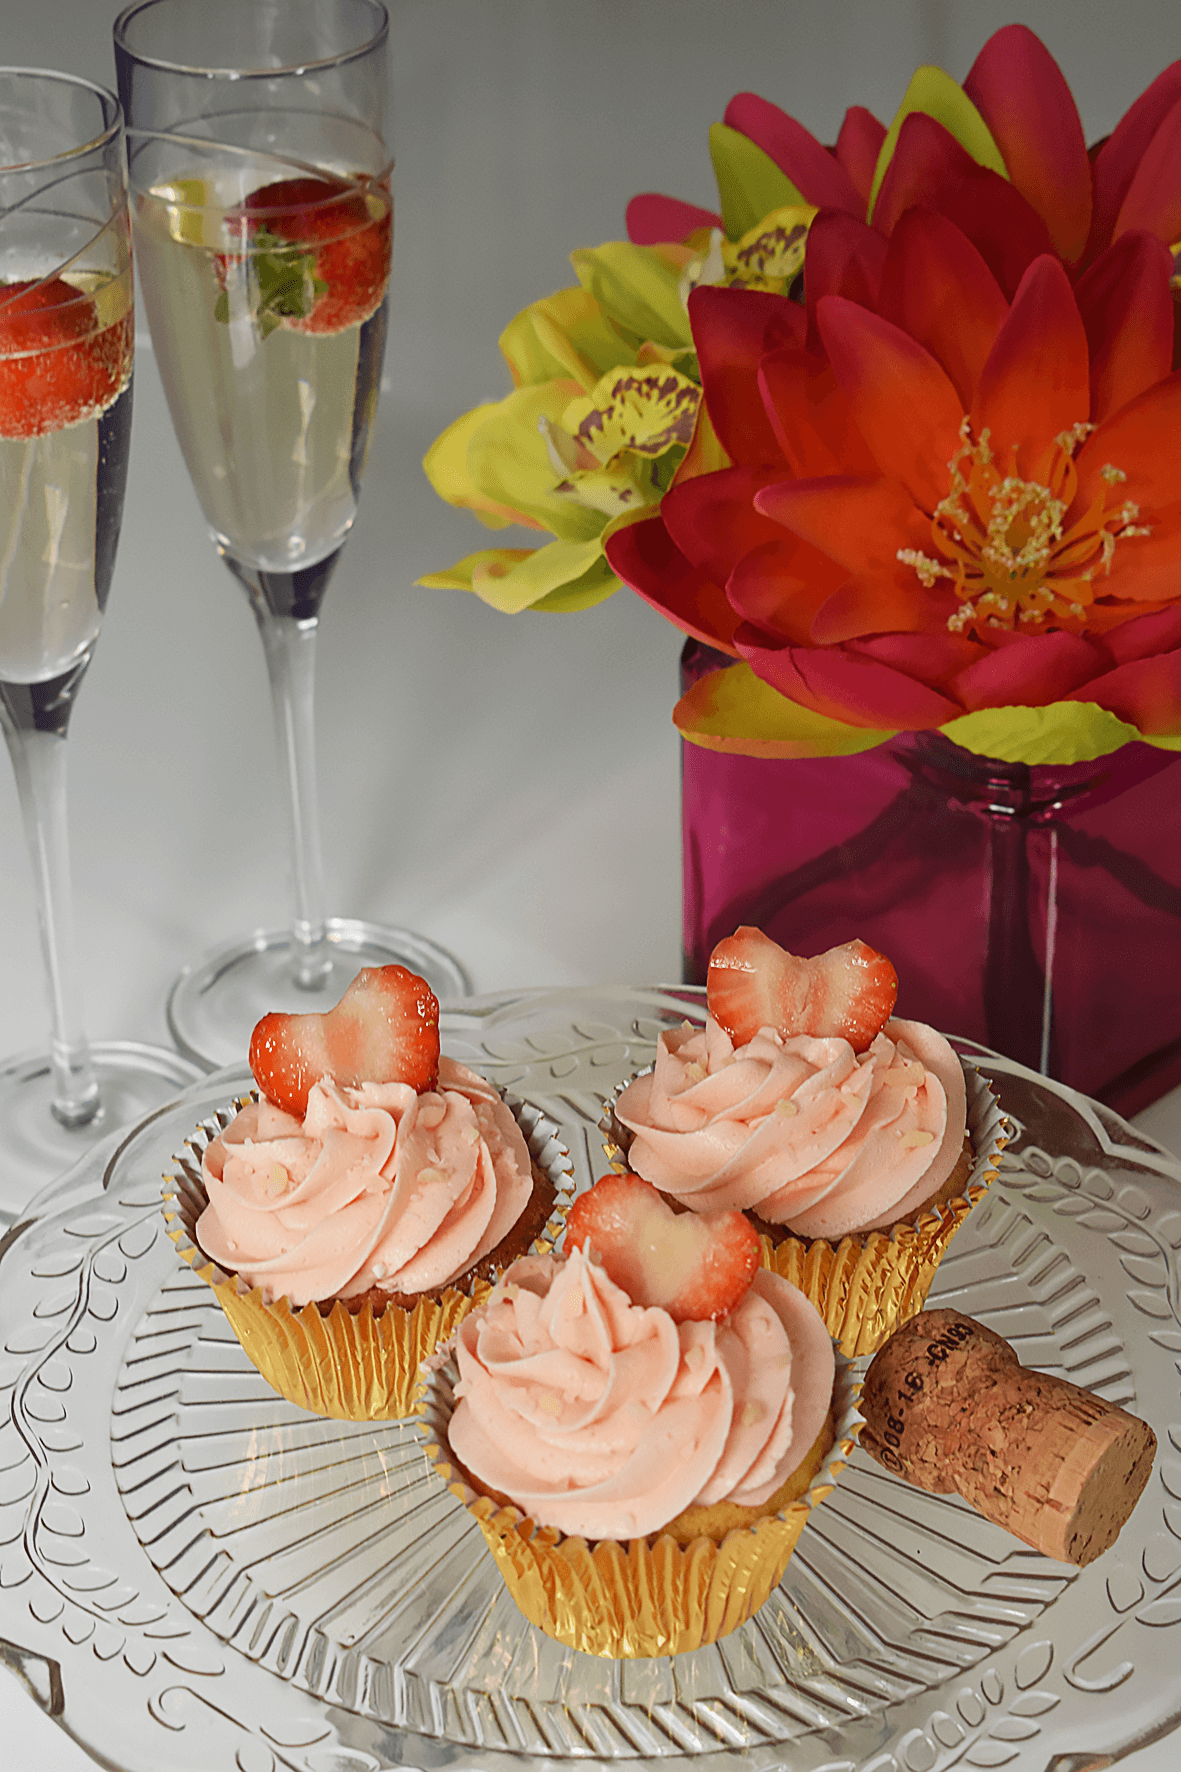 cupcakes and prosecco